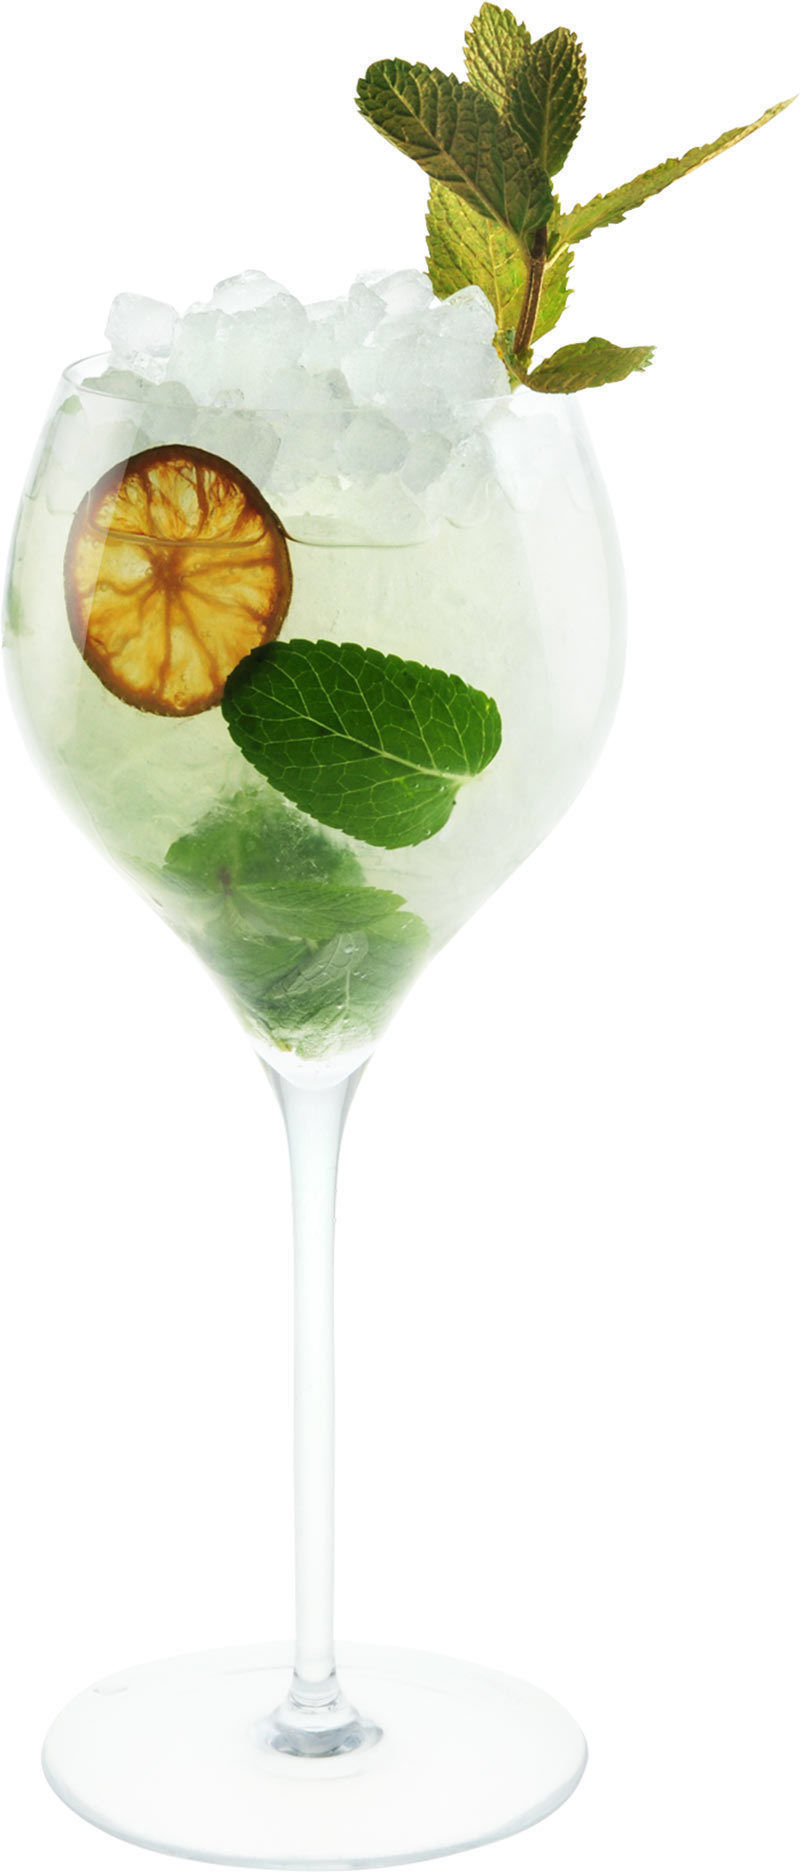 Comment préparer le cocktail Mojito royal